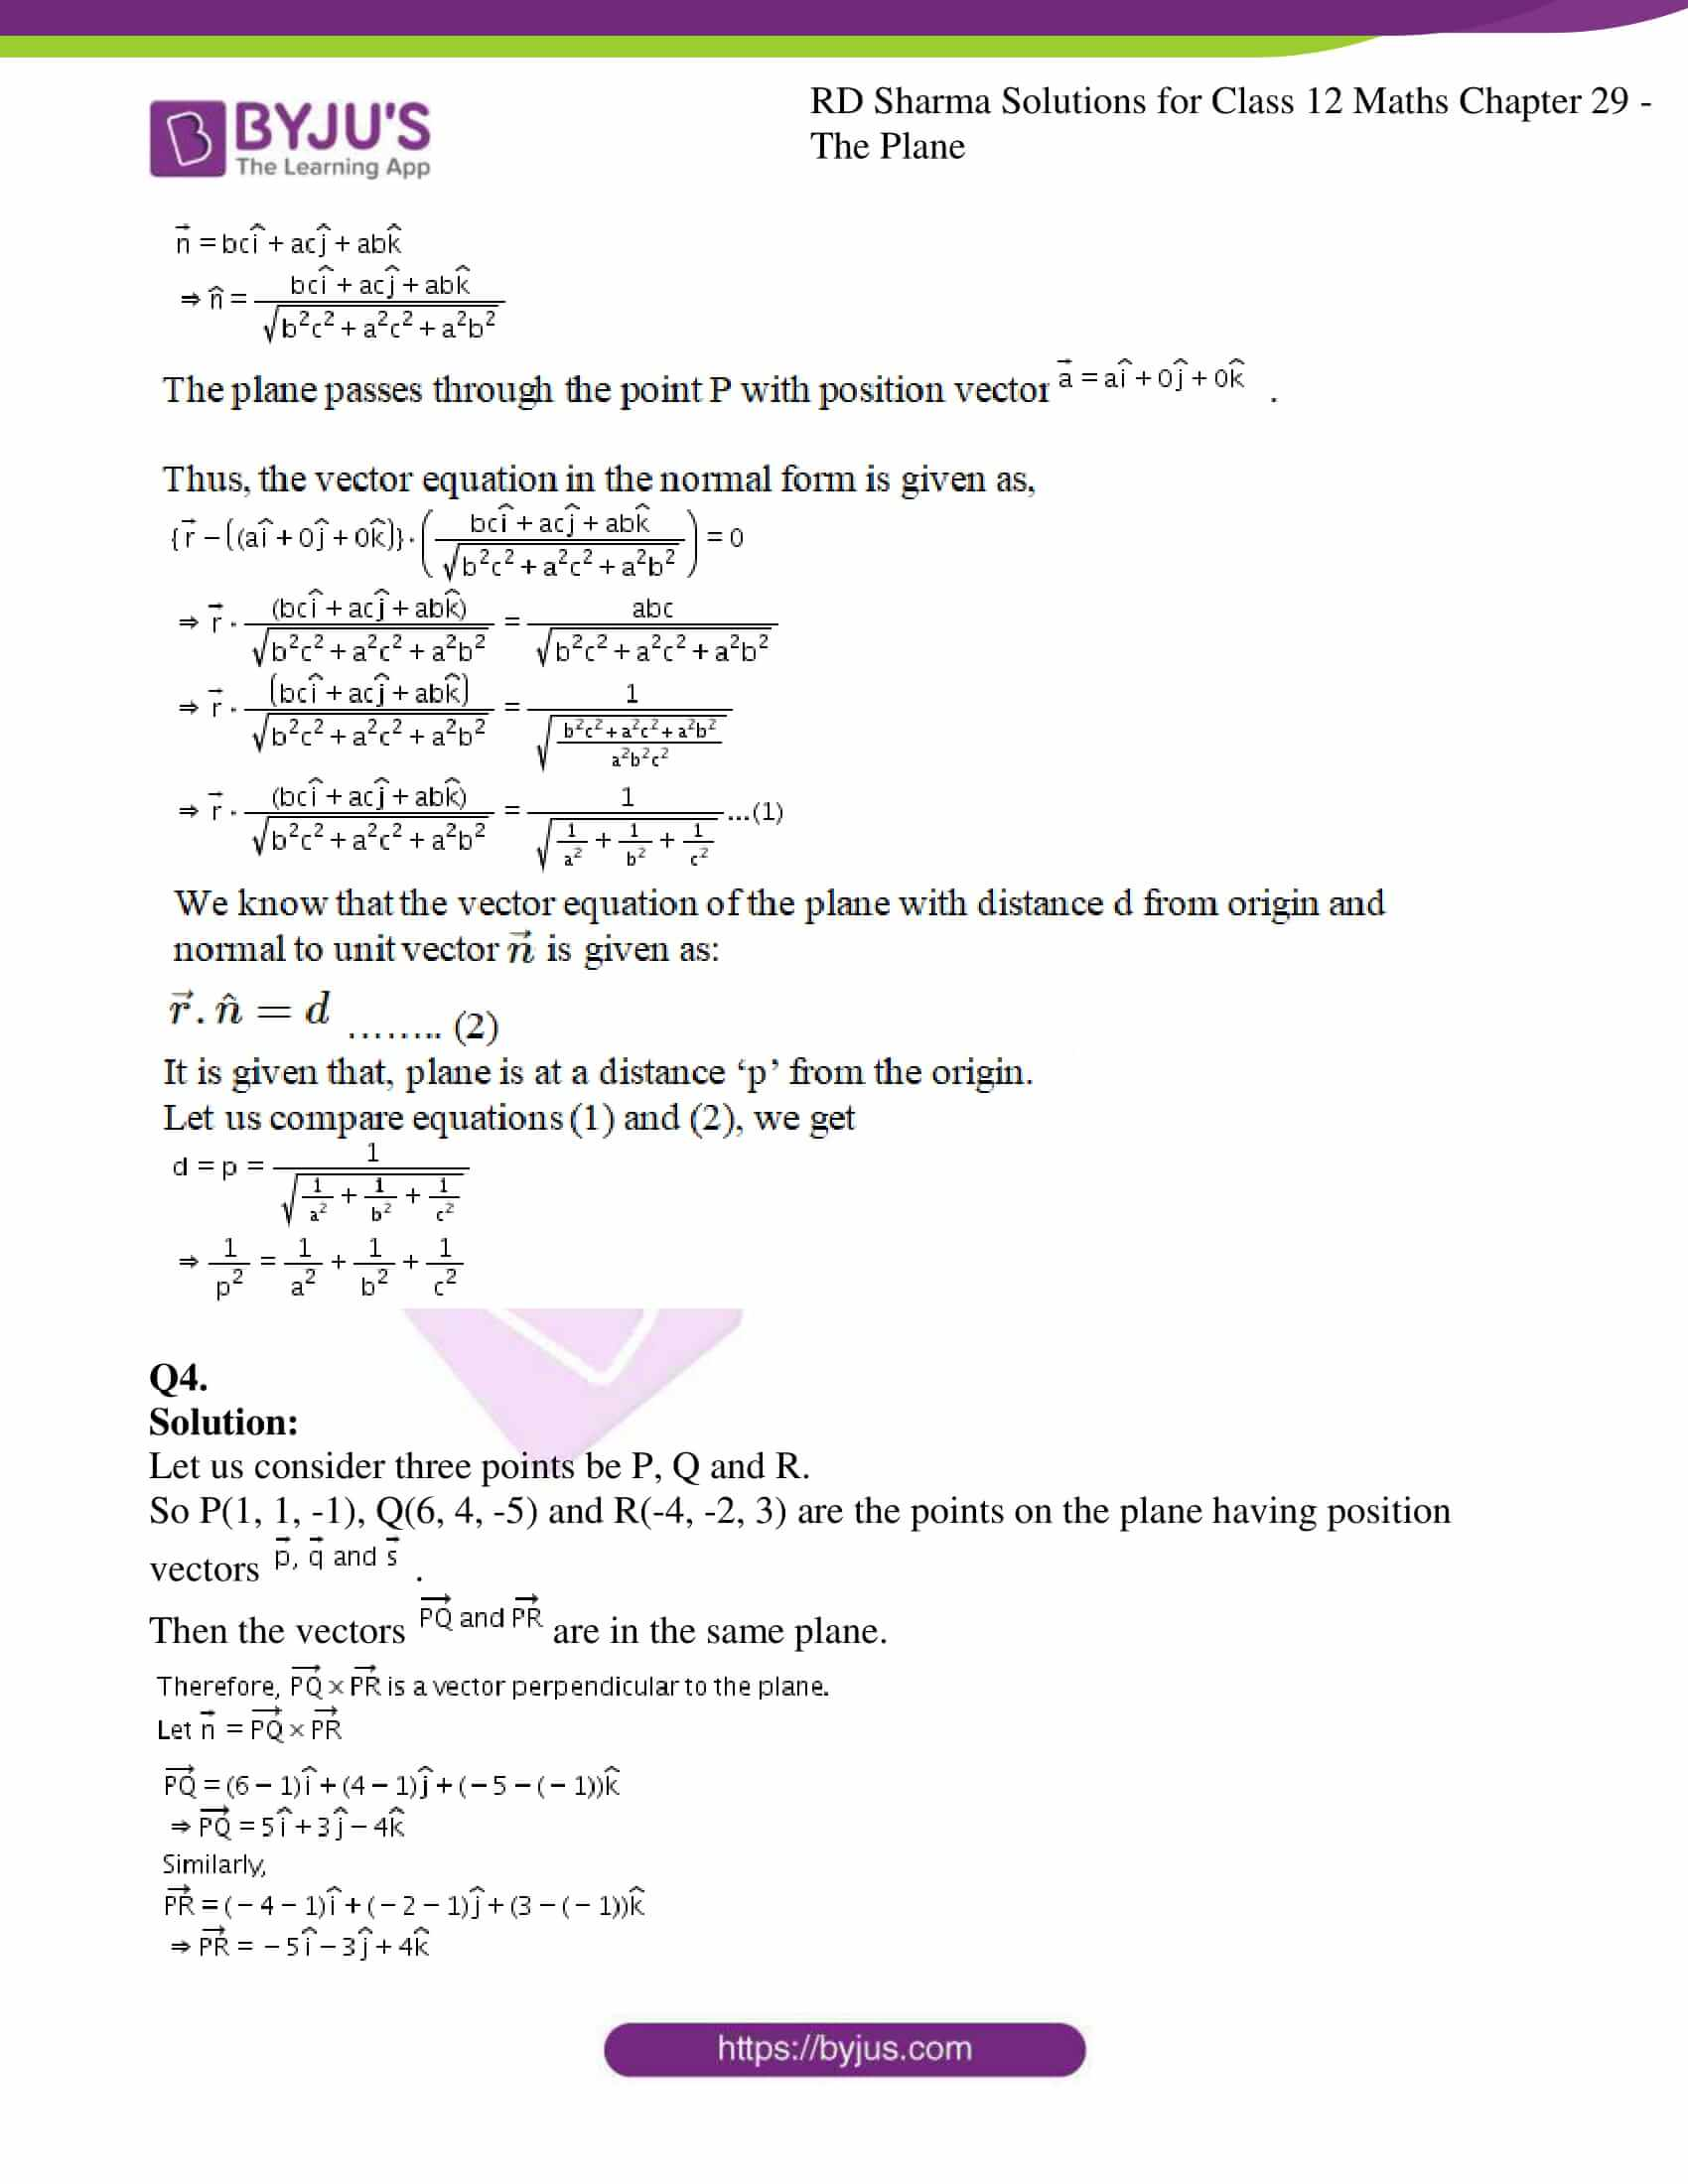 rd sharma solutions for class 12 maths chapter 29 ex 5 3